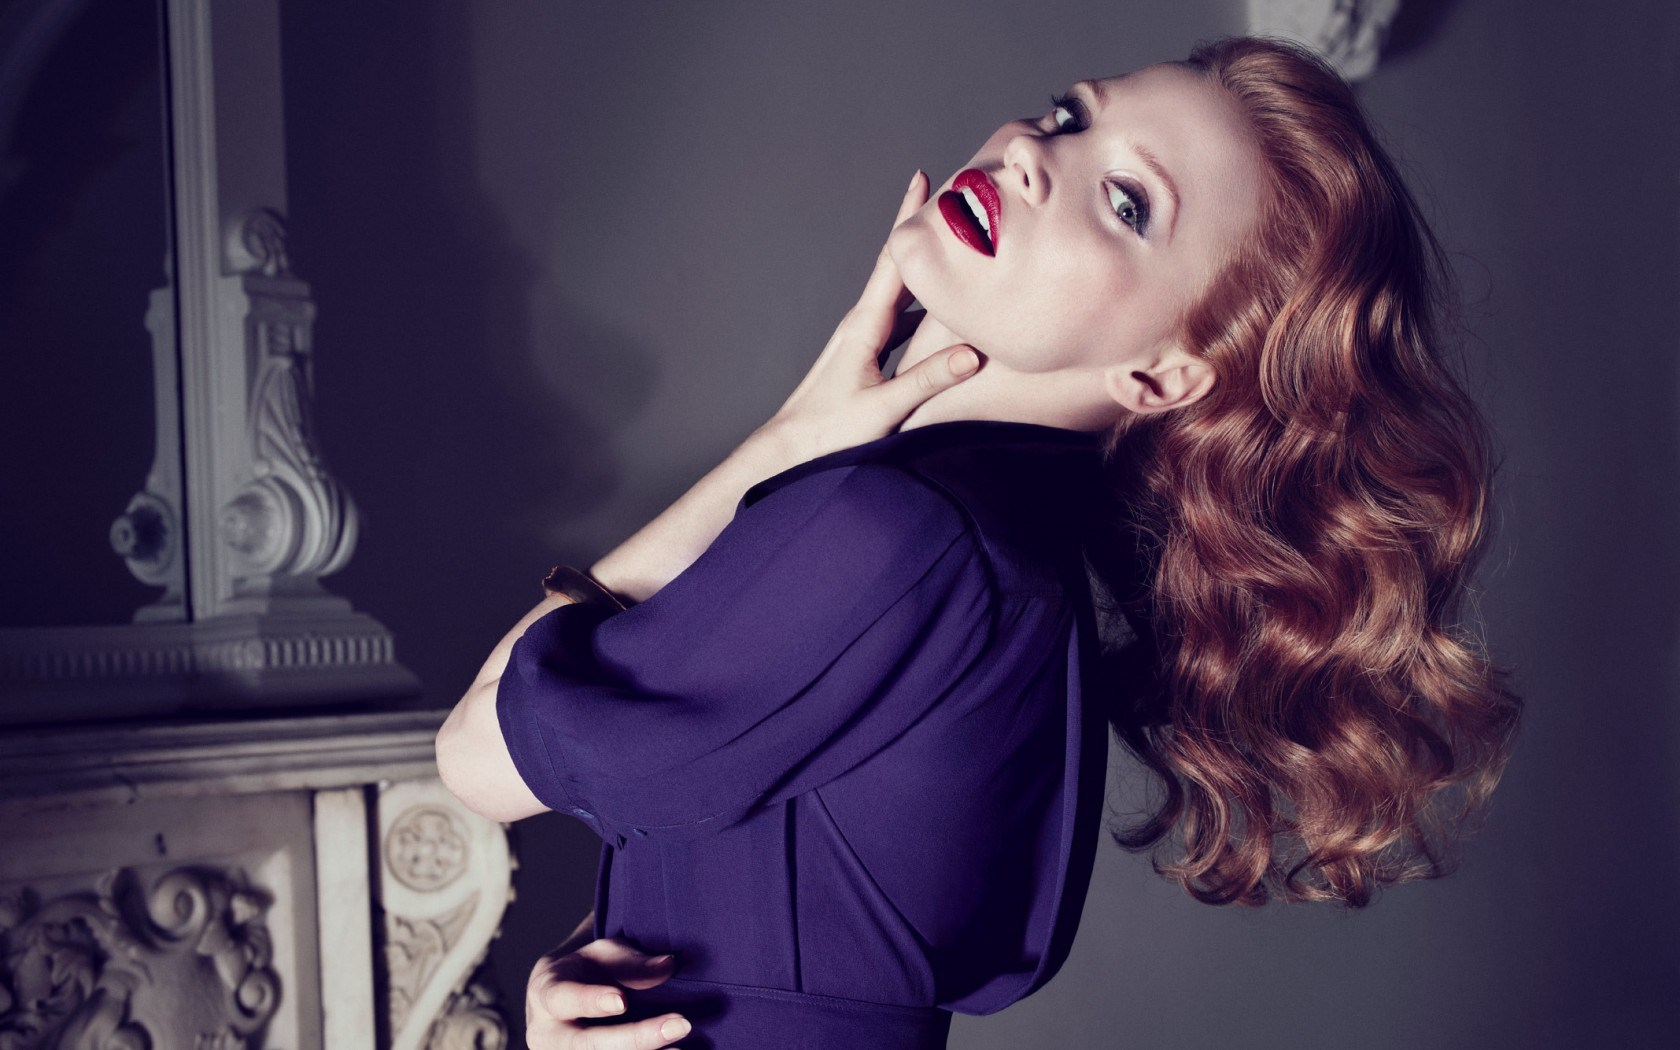 jessica chastain wallpaper 44530